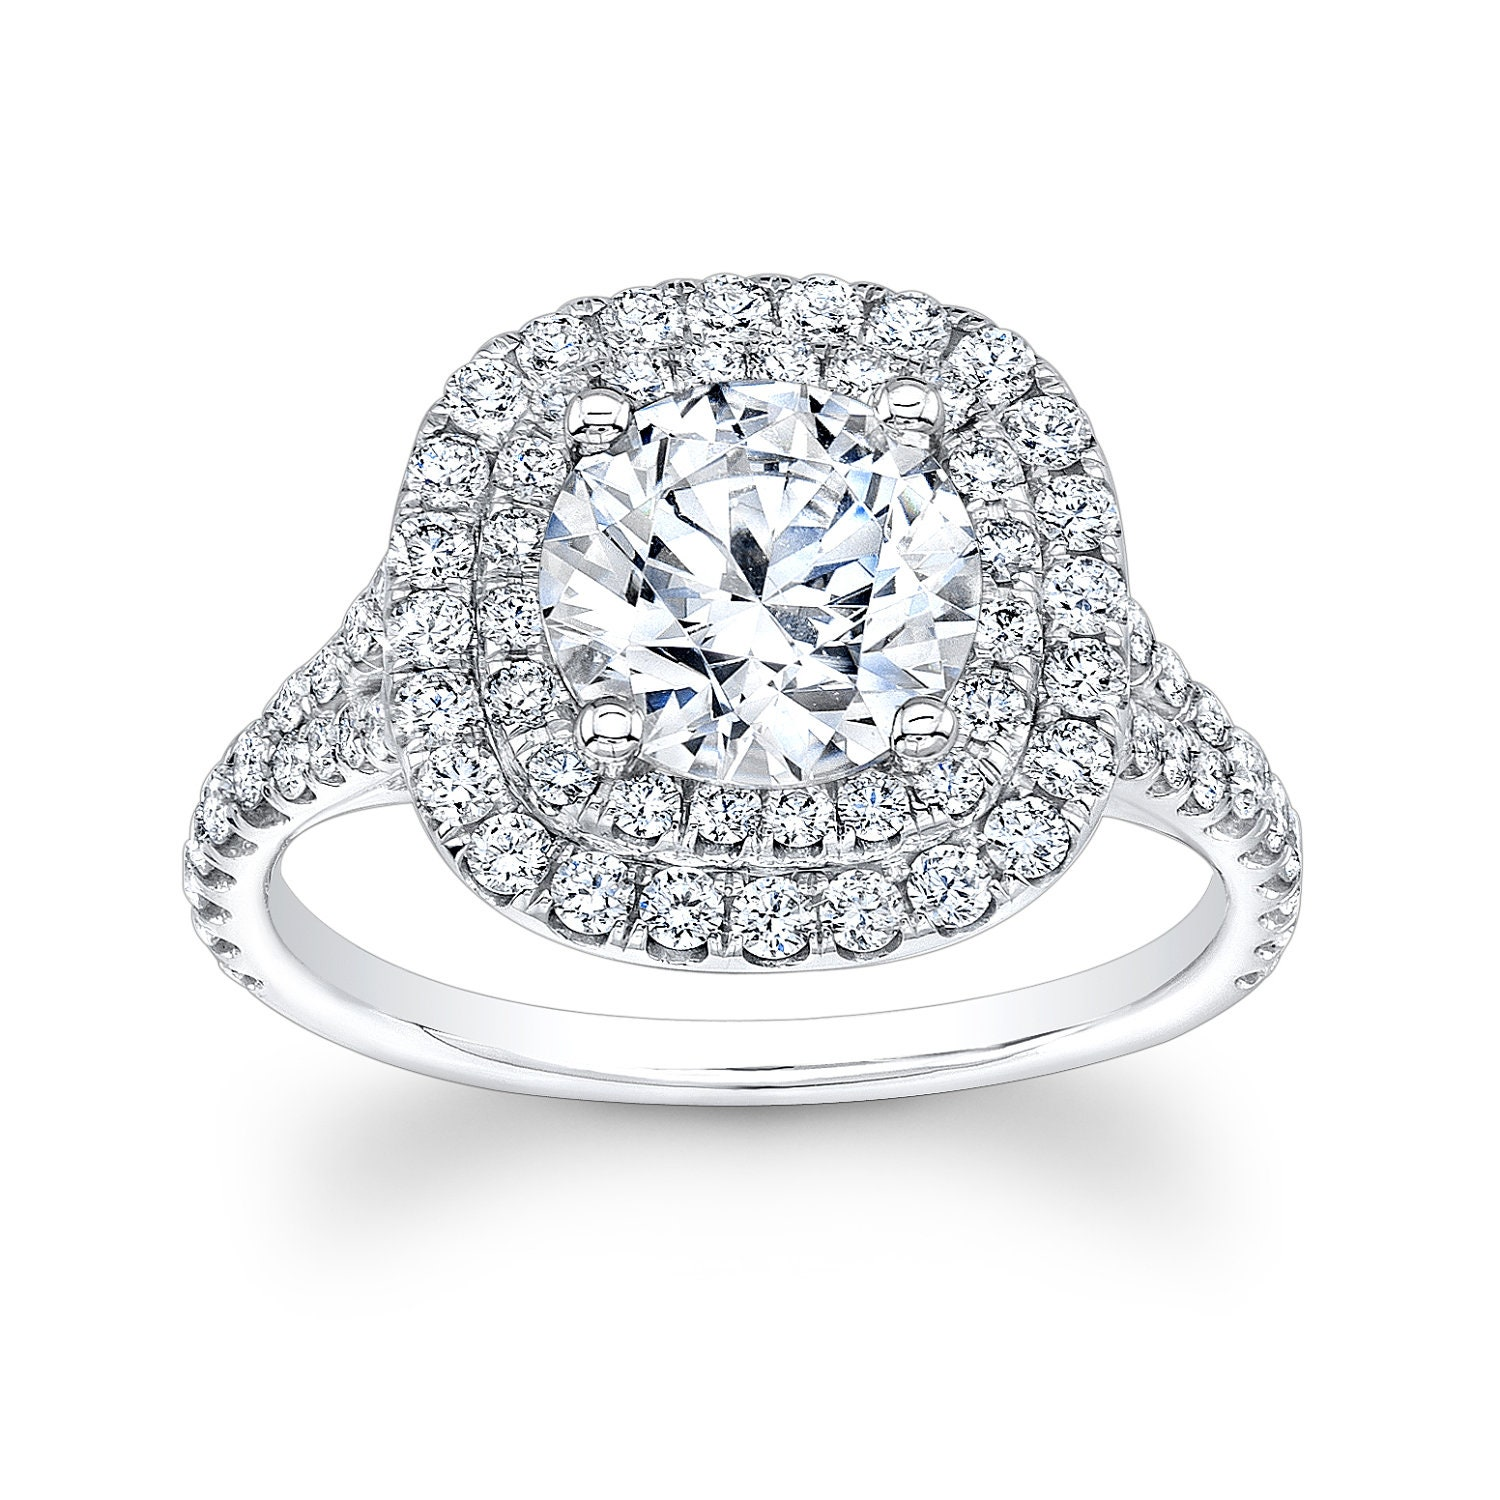 Round Double Halo Engagement Rings Viewing Gallery